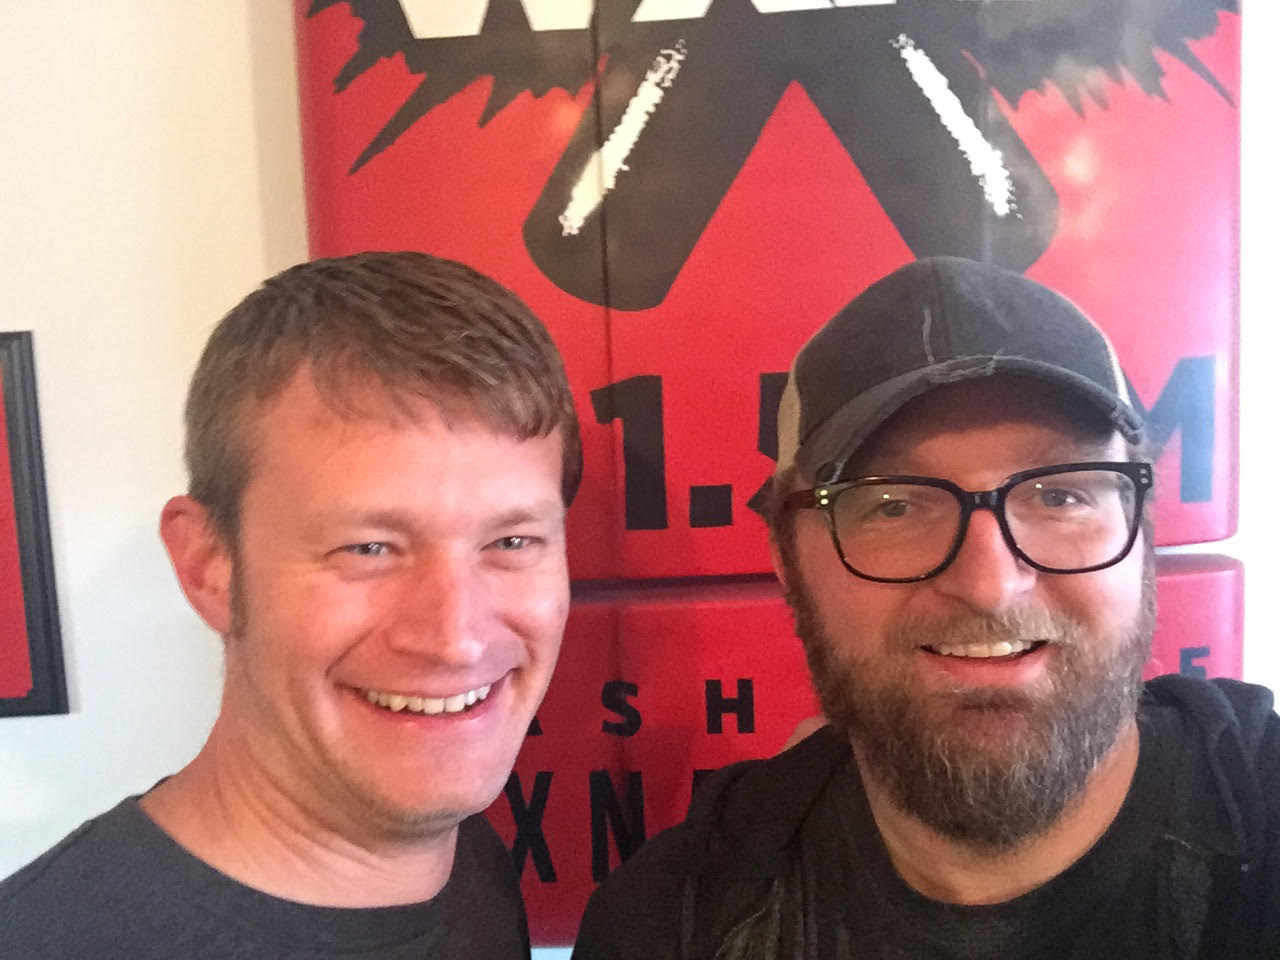 Monty Mitchell and Chad Riden at WXNA 2/8/2017